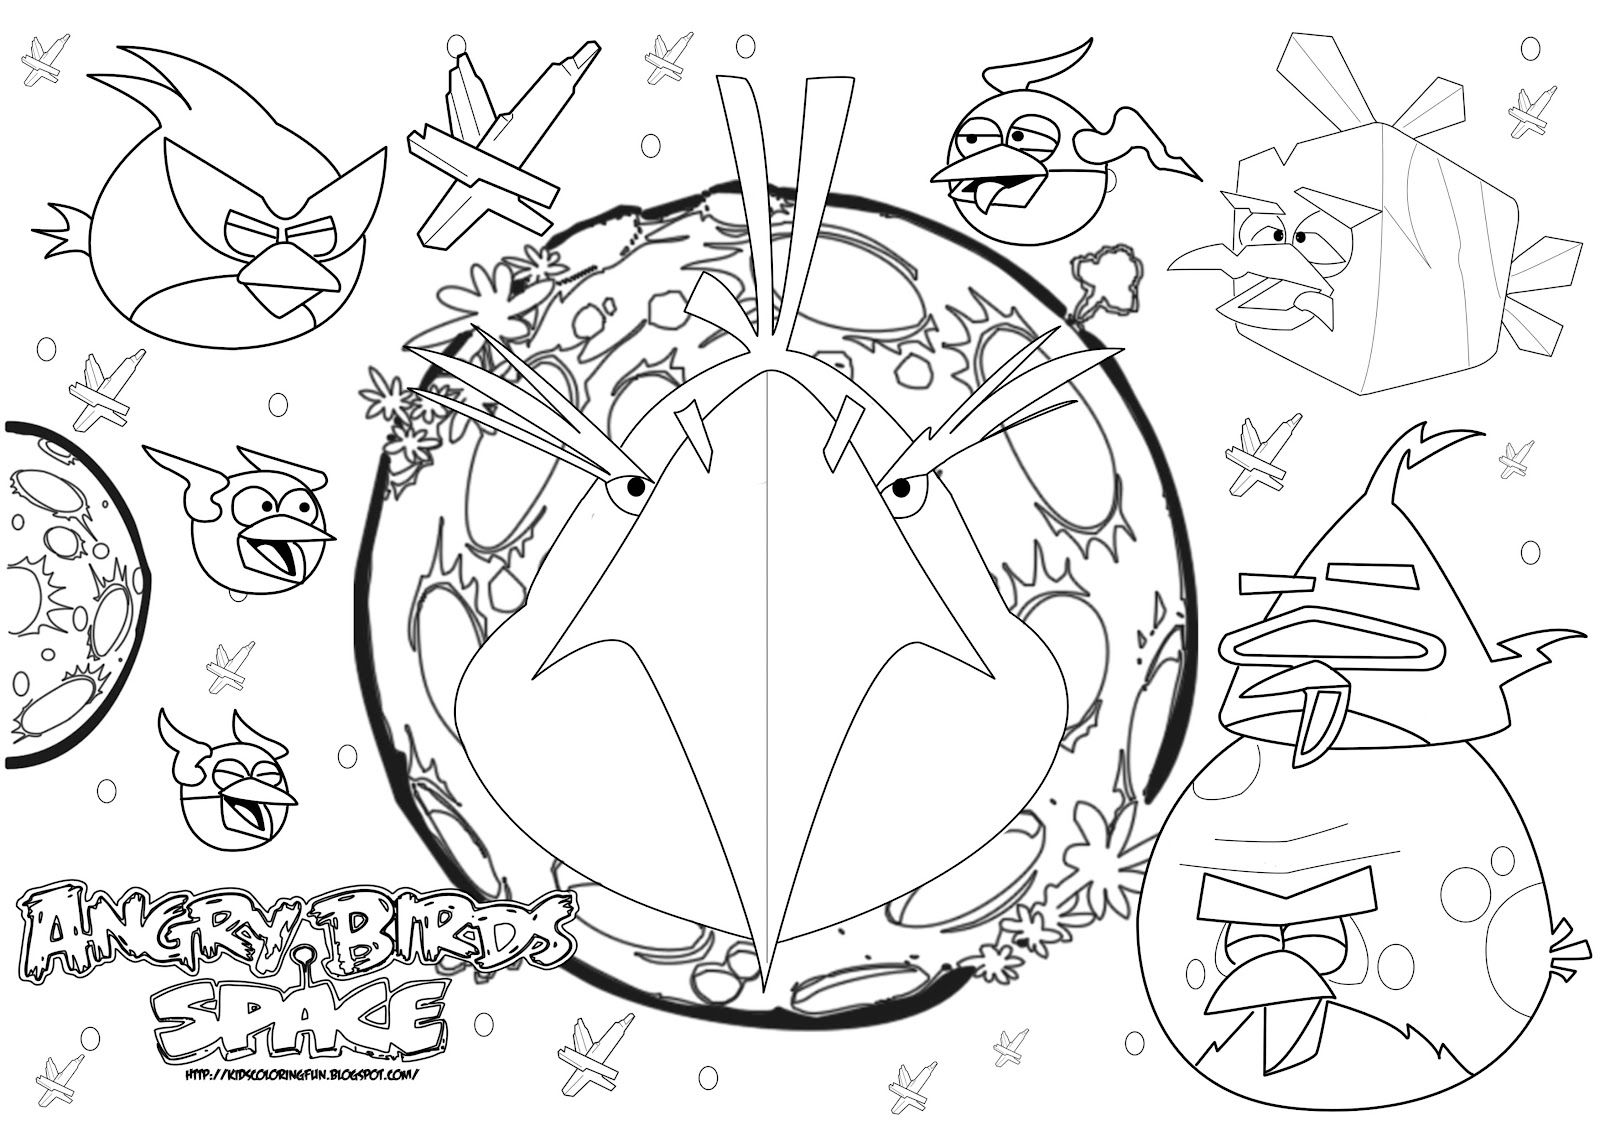 Pin By Shann Gorman On Superheroes Dinosaurs Princesses Space Coloring Pages Bird Coloring Pages Coloring Pages [ 1131 x 1600 Pixel ]